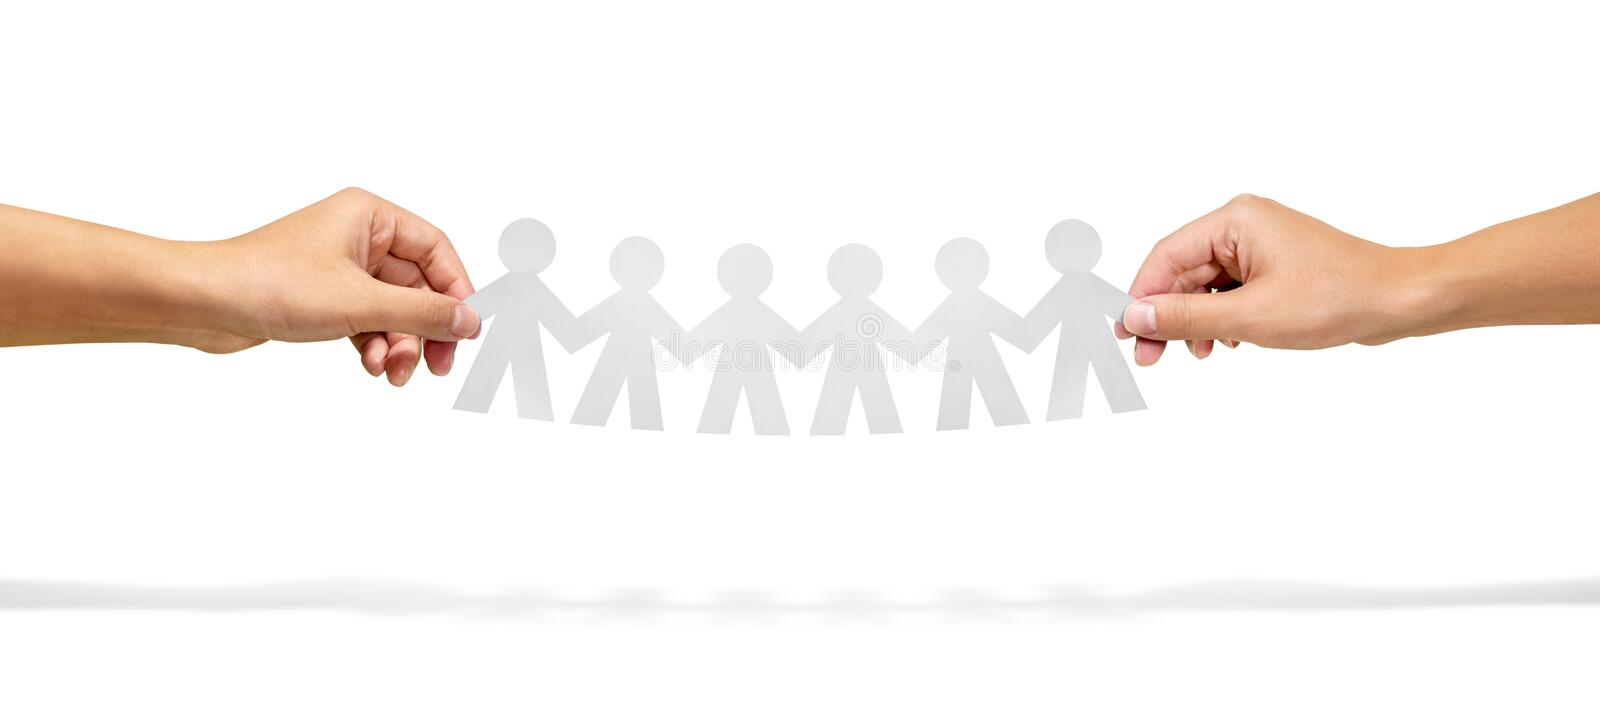 Community, unity and teamwork concept - hands holding paper chain people over white background stock photos